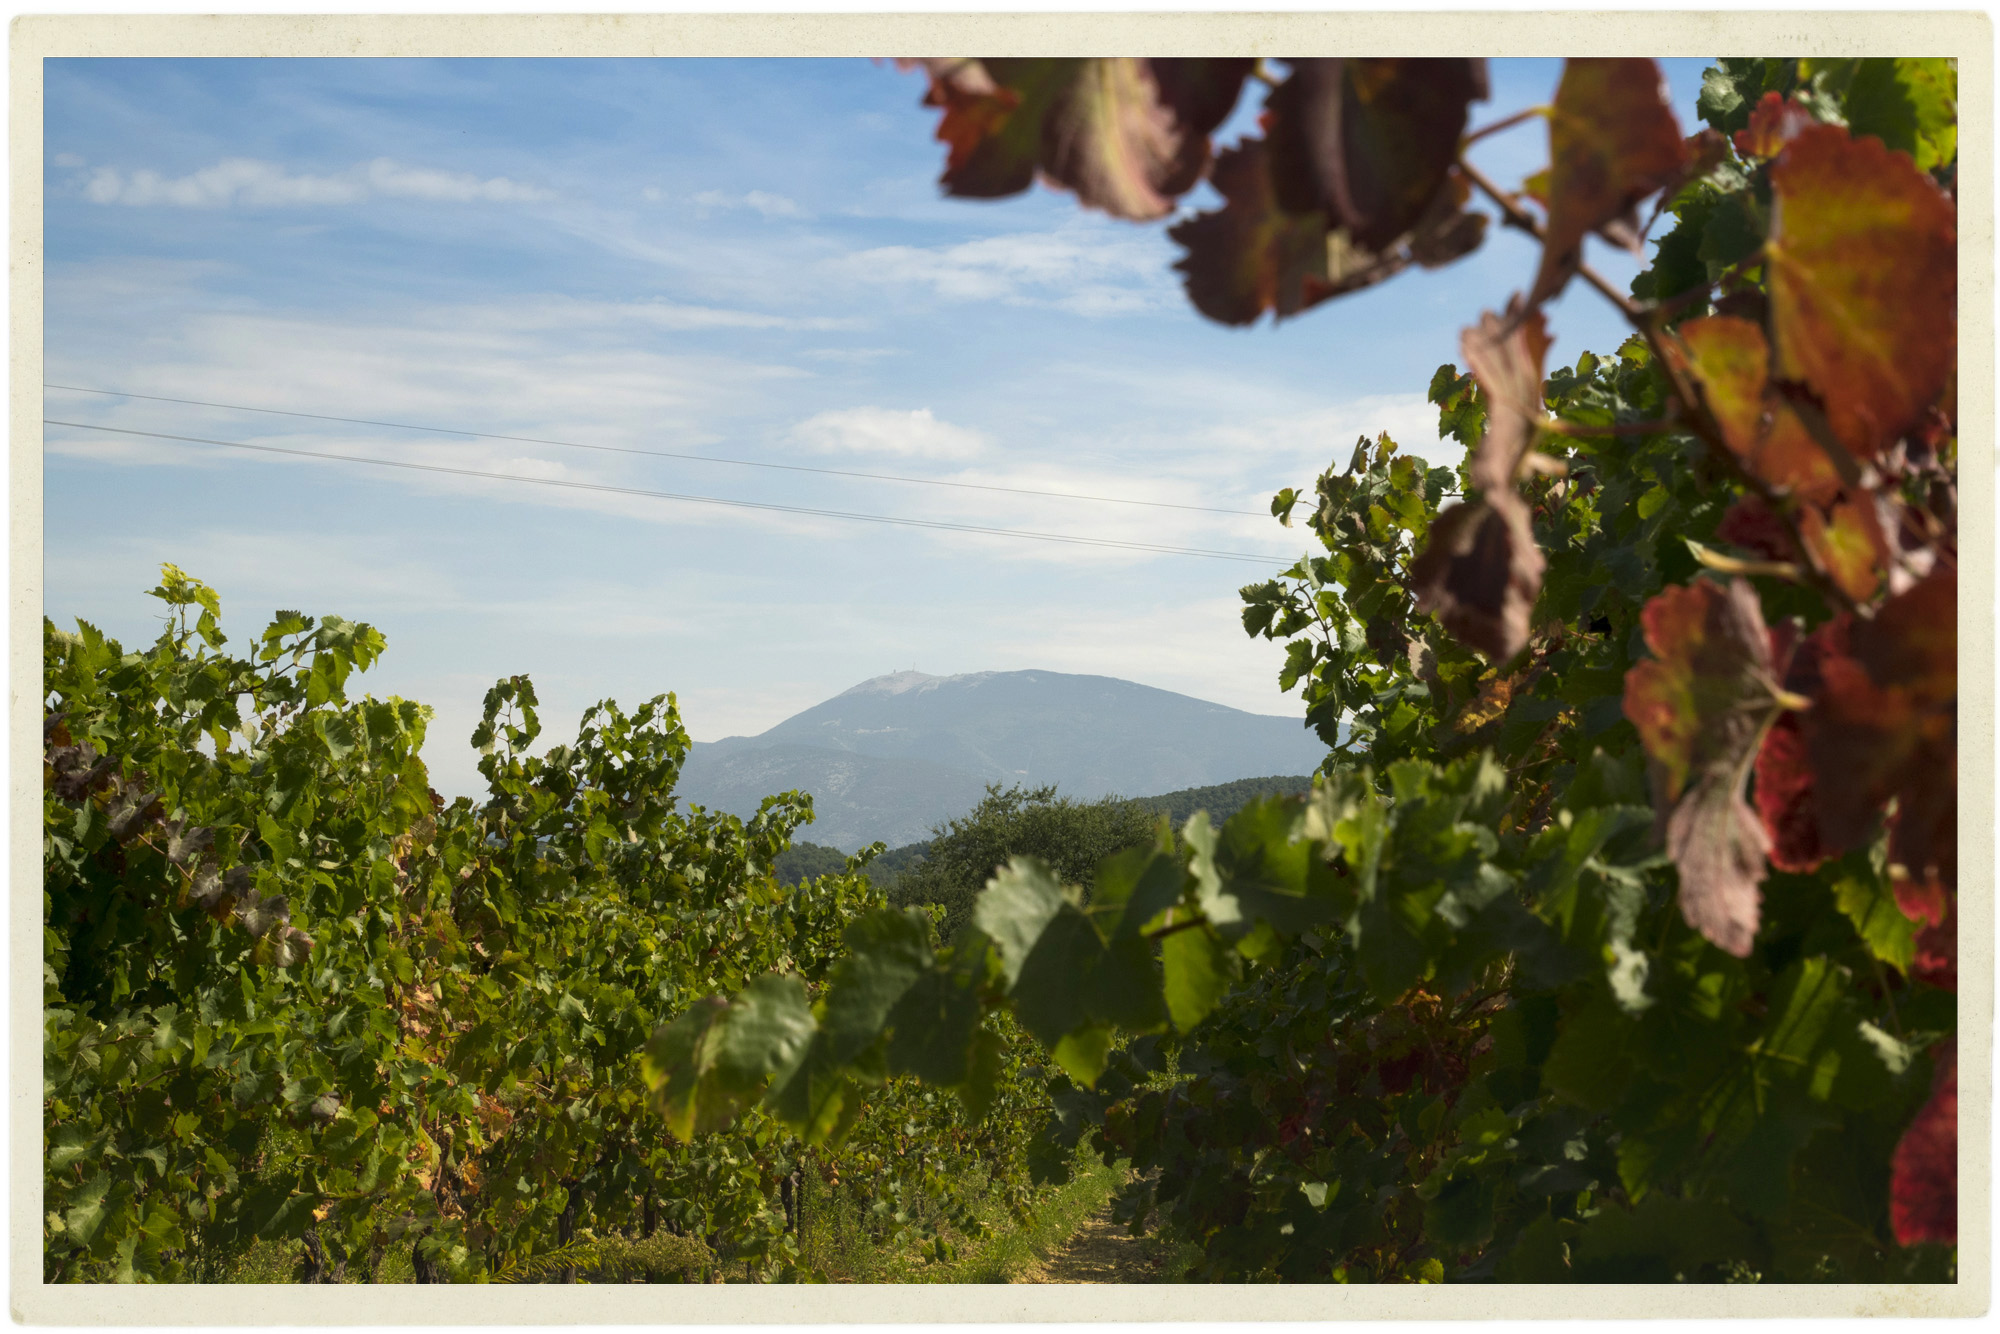 Ventoux in the distance from a vineyard in Roaix.